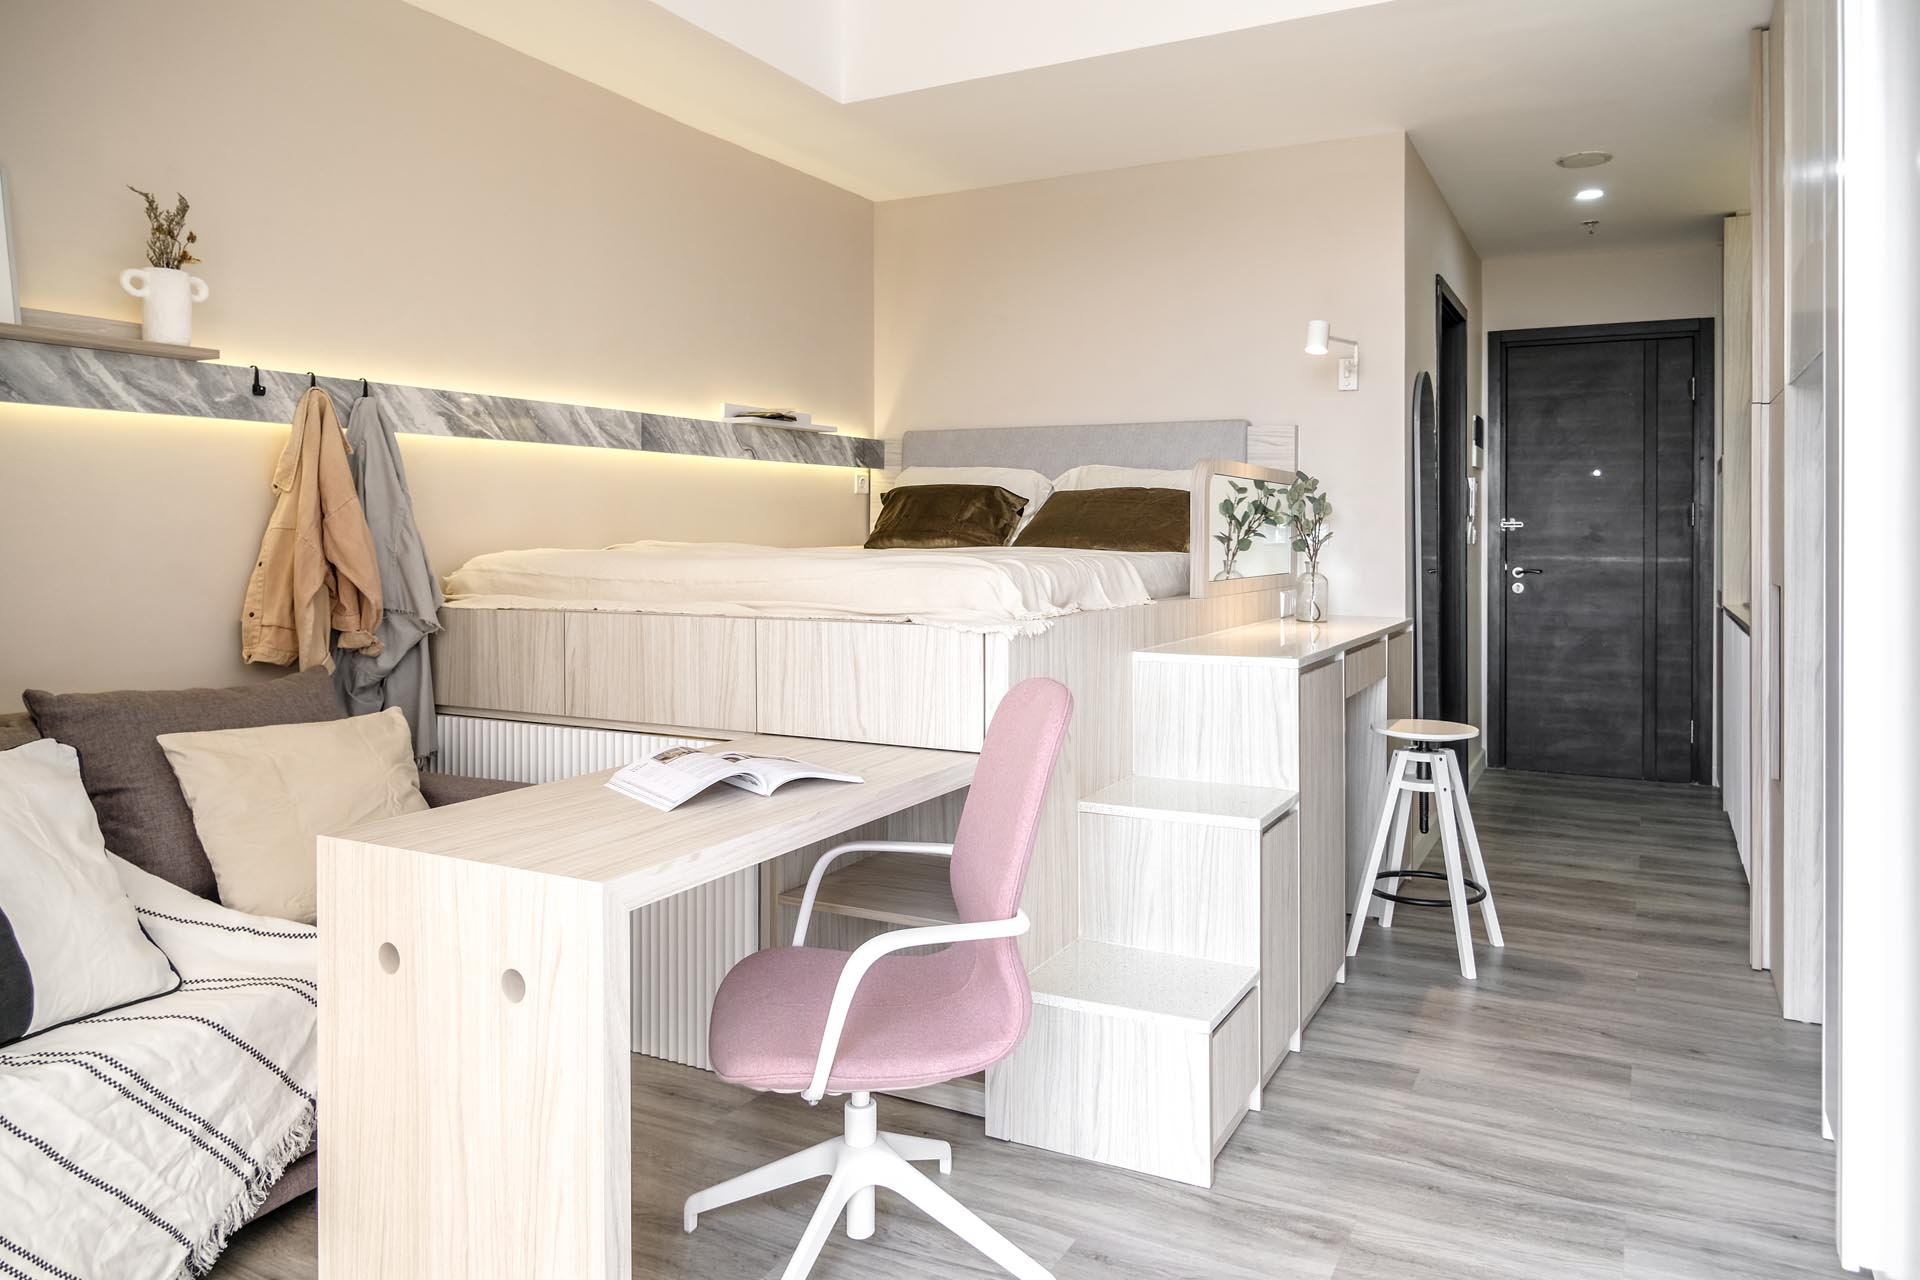 A small apartment with a loft bed includes a home office, storage, and hidden lighting.